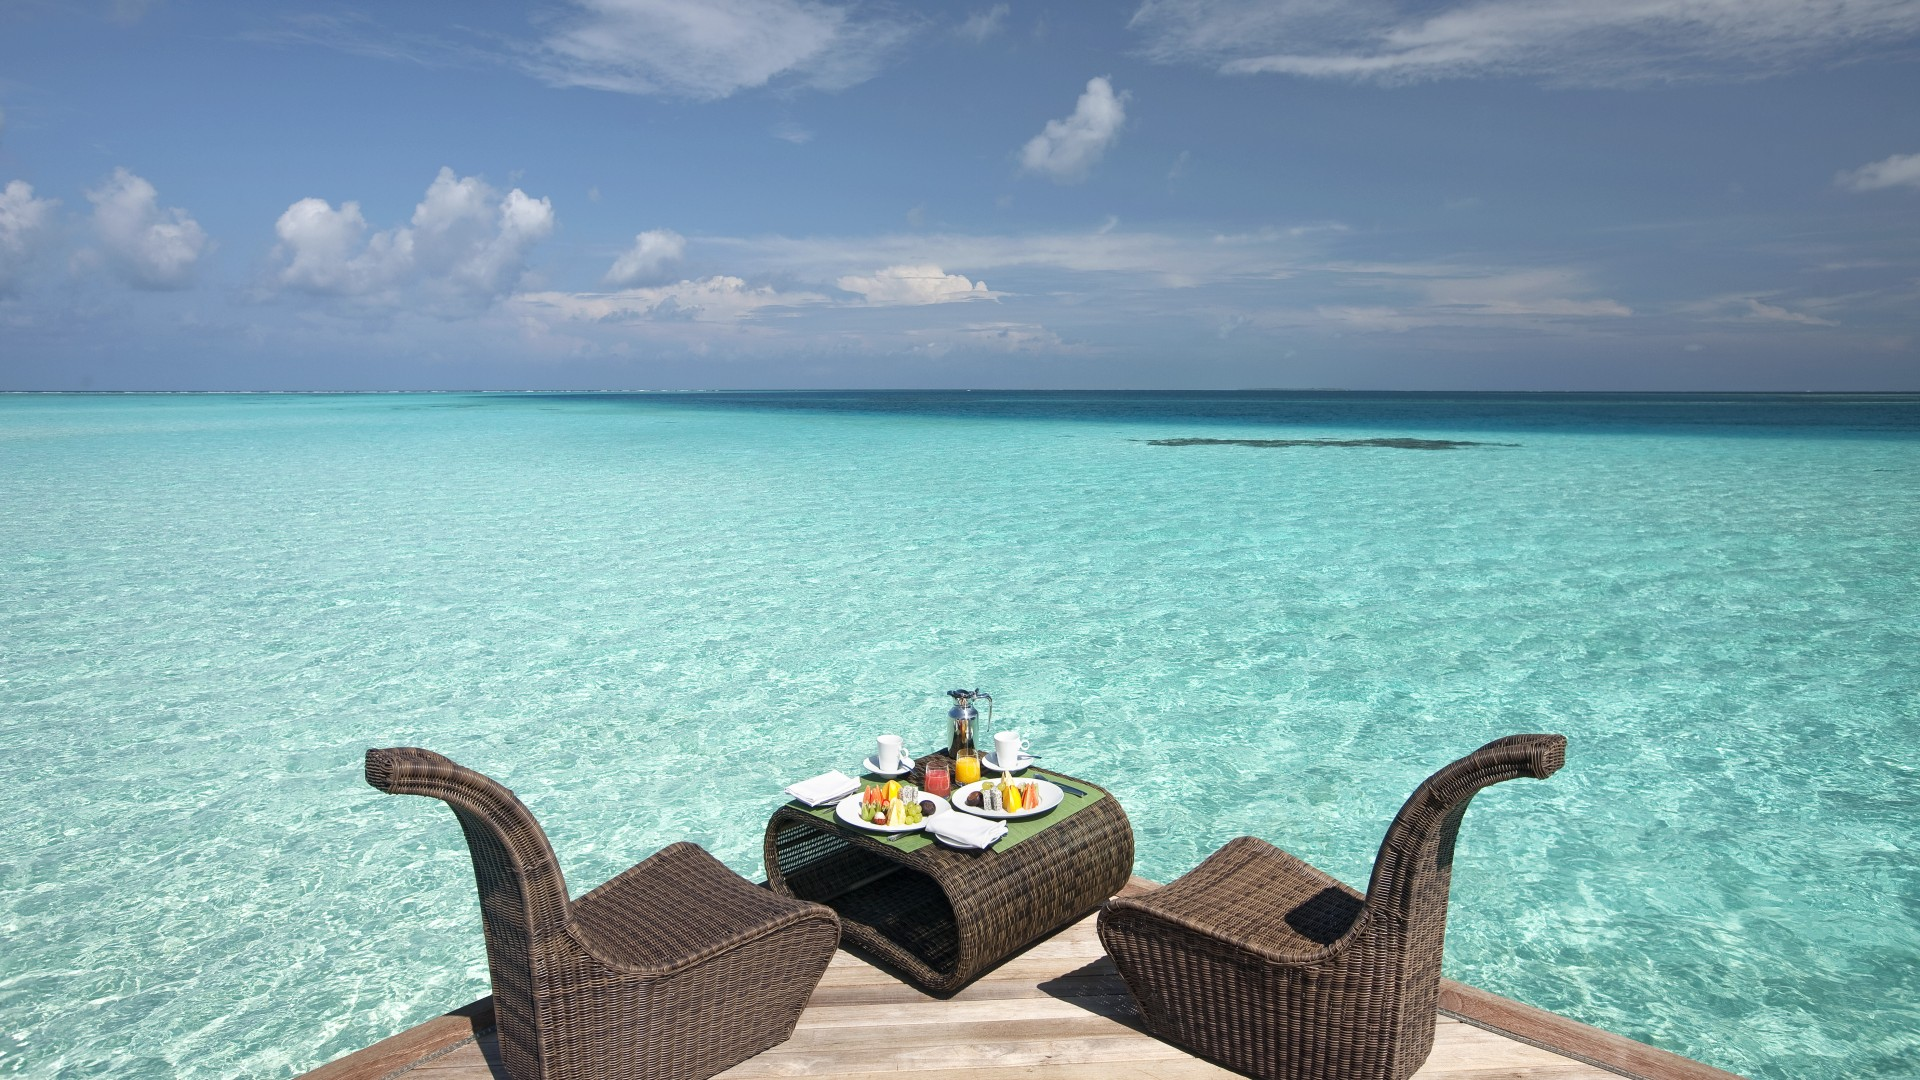 Constance Moofushi, Maldives, Best Hotels of 2017, tourism, travel. resort, vacation, sea, ocean, water (horizontal)